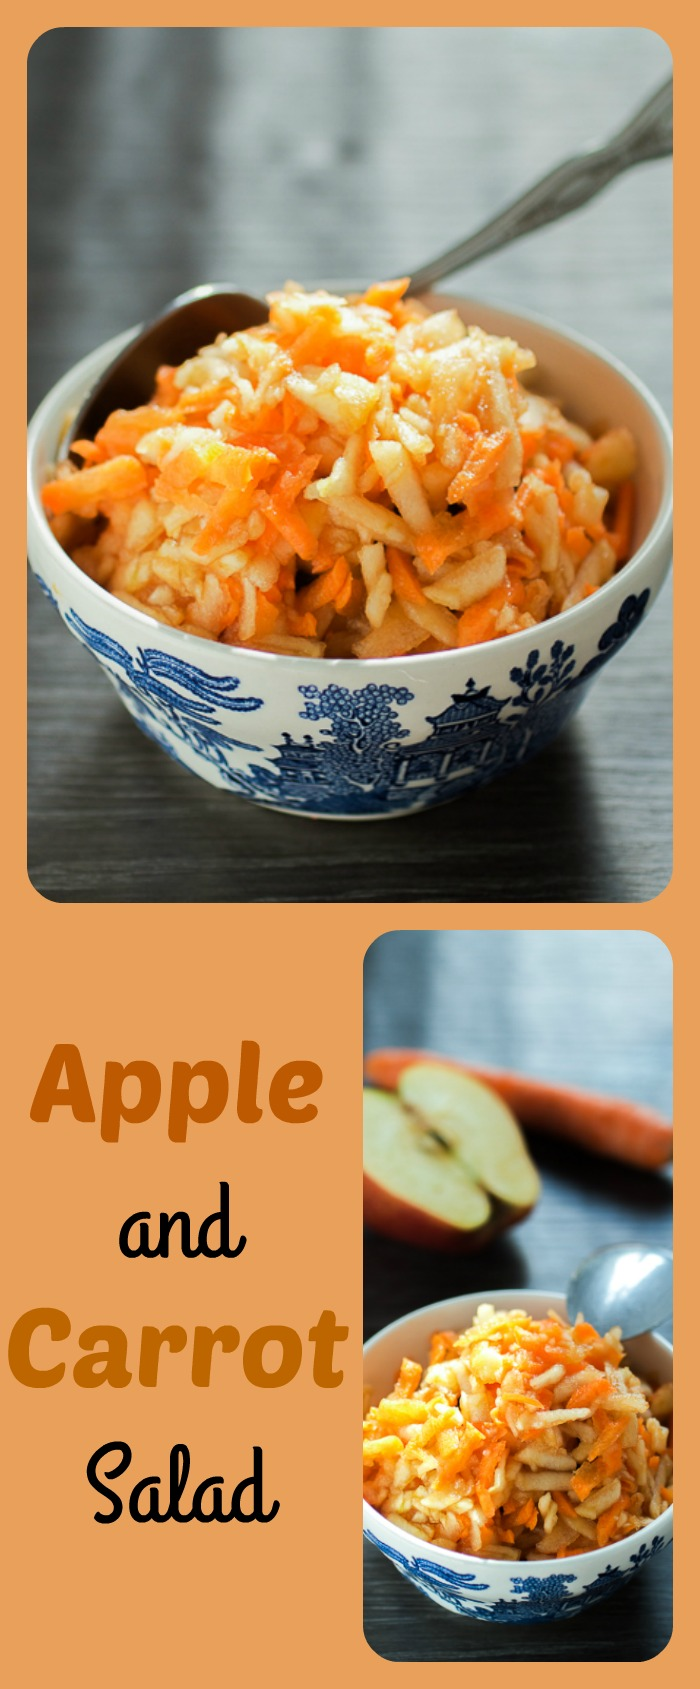 "Apple and carrot salad is more a dessert and less a salad. This simple 1:1 carrot to apple (grated) equation is the healthiest, but most appeasing answer to the quintessential question ""Is there anything sweet to eat in this house?"""